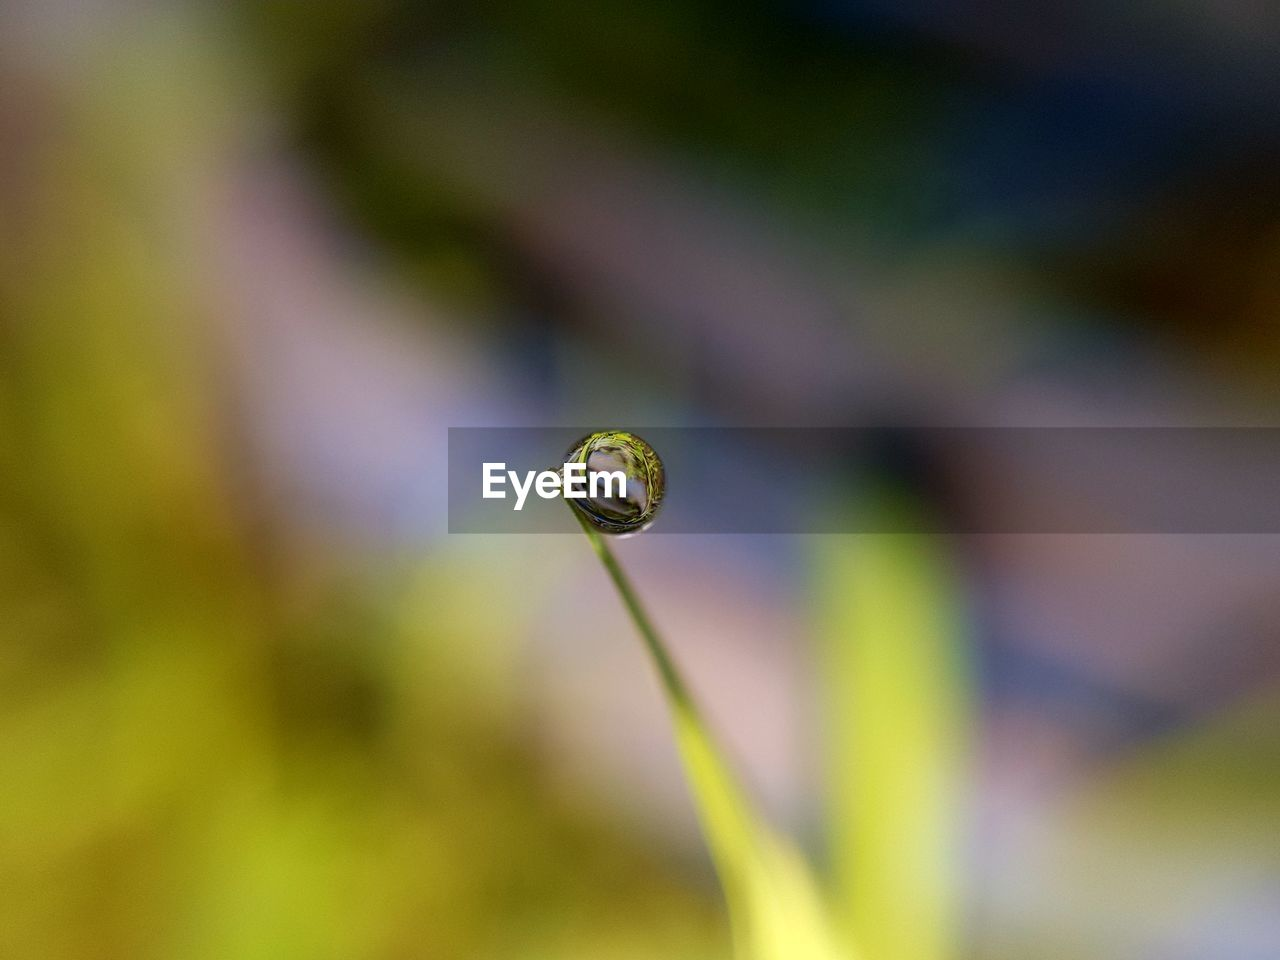 close-up, beauty in nature, plant, growth, vulnerability, selective focus, fragility, focus on foreground, day, nature, no people, animal themes, animal, animals in the wild, flower, animal wildlife, green color, one animal, invertebrate, water, outdoors, purity, blade of grass